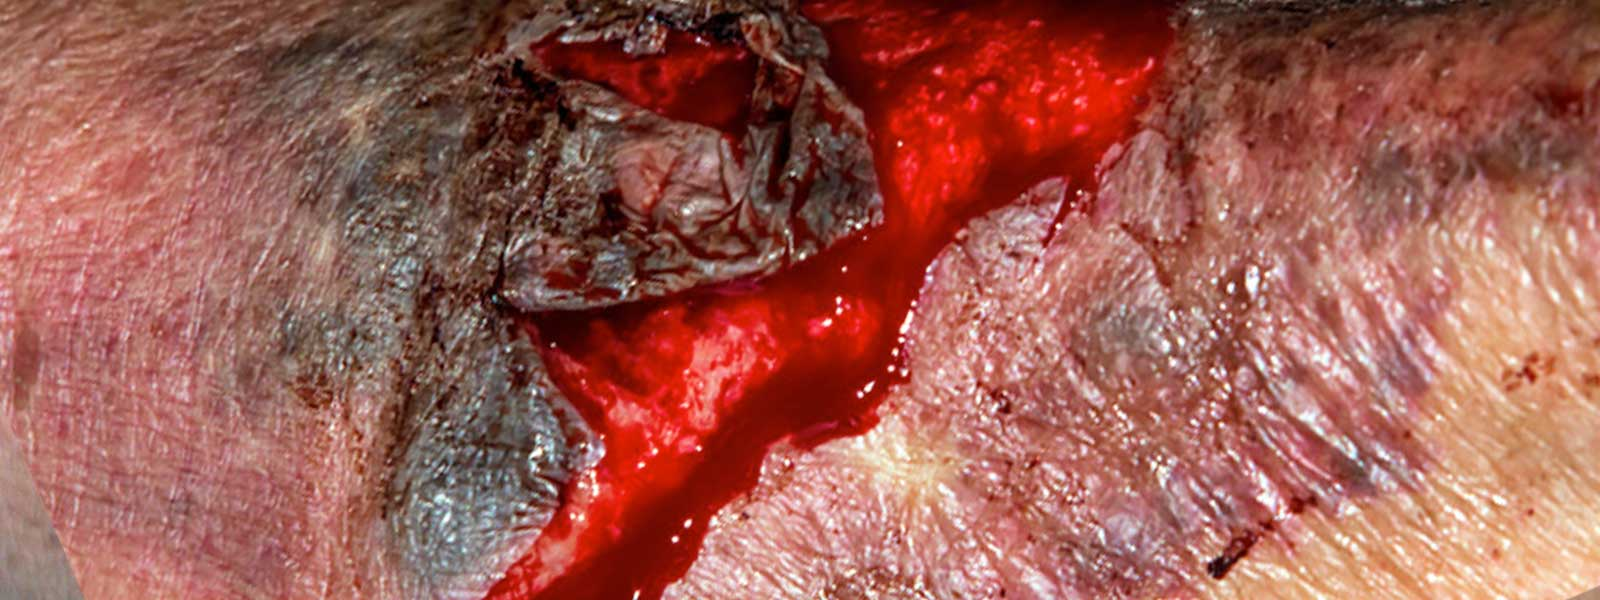 photo of a bleeding laceration